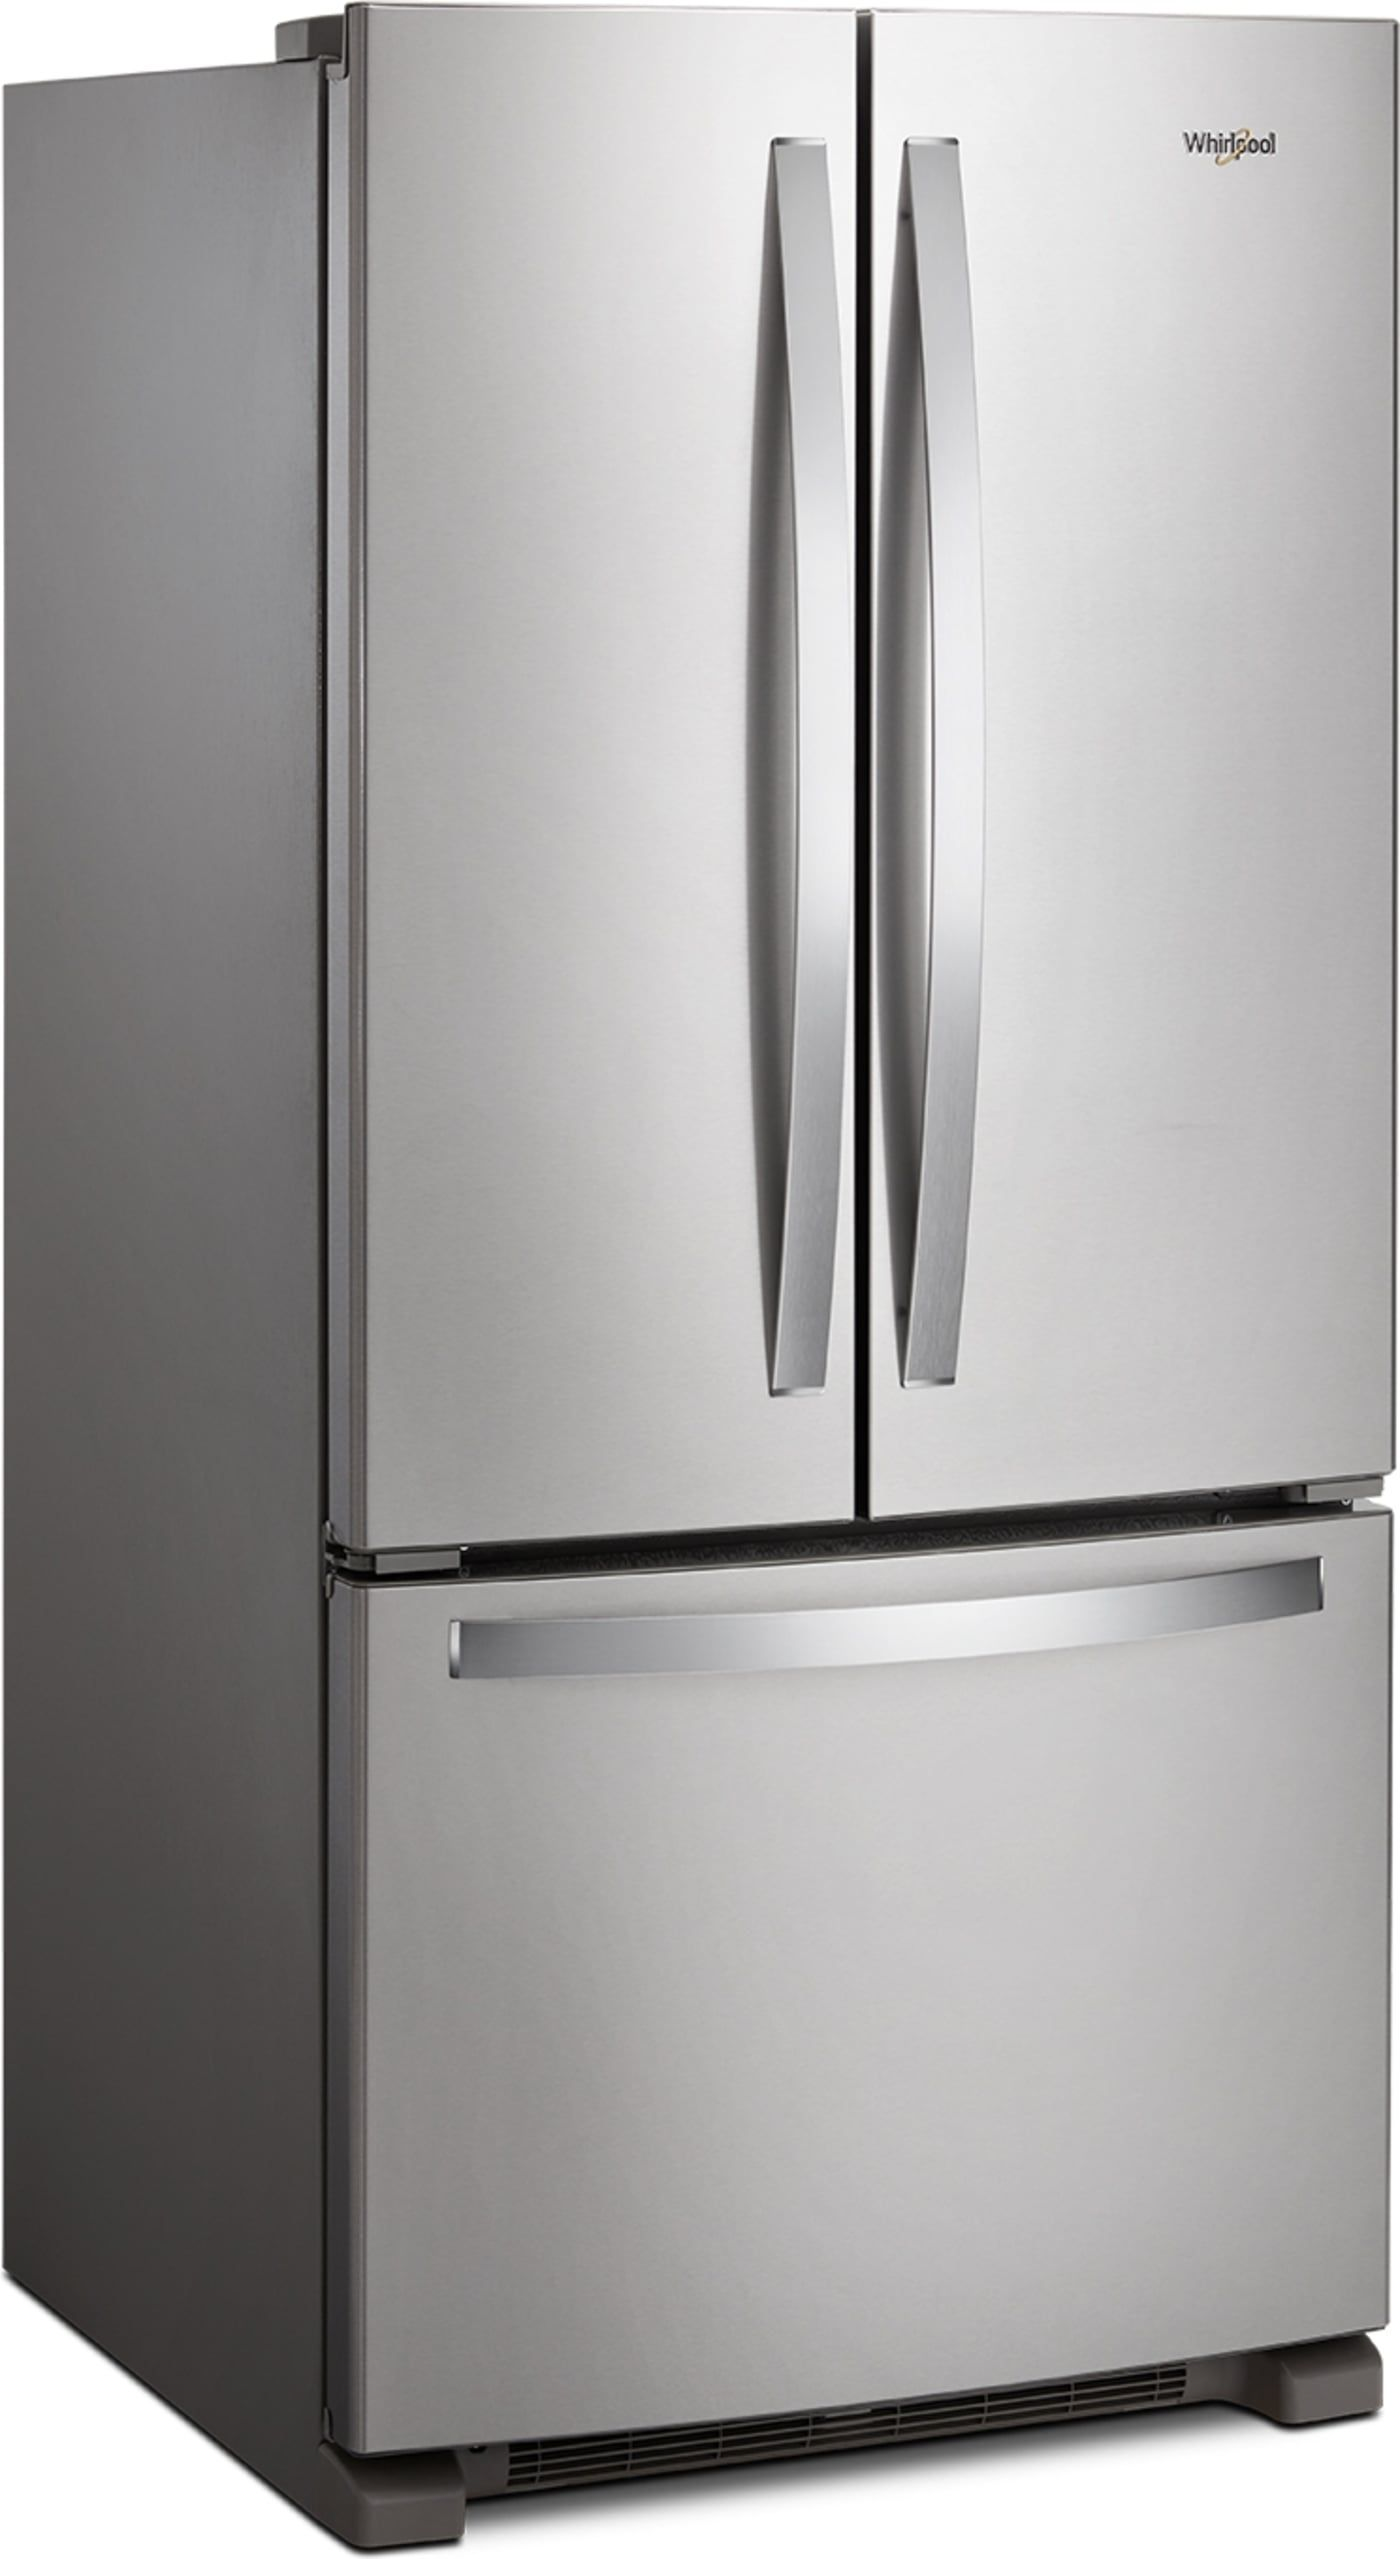 Wrf532smhz By Whirlpool French Door Refrigerators Goedekers Com Stainless Steel French Door Refrigerator French Doors Old Refrigerator